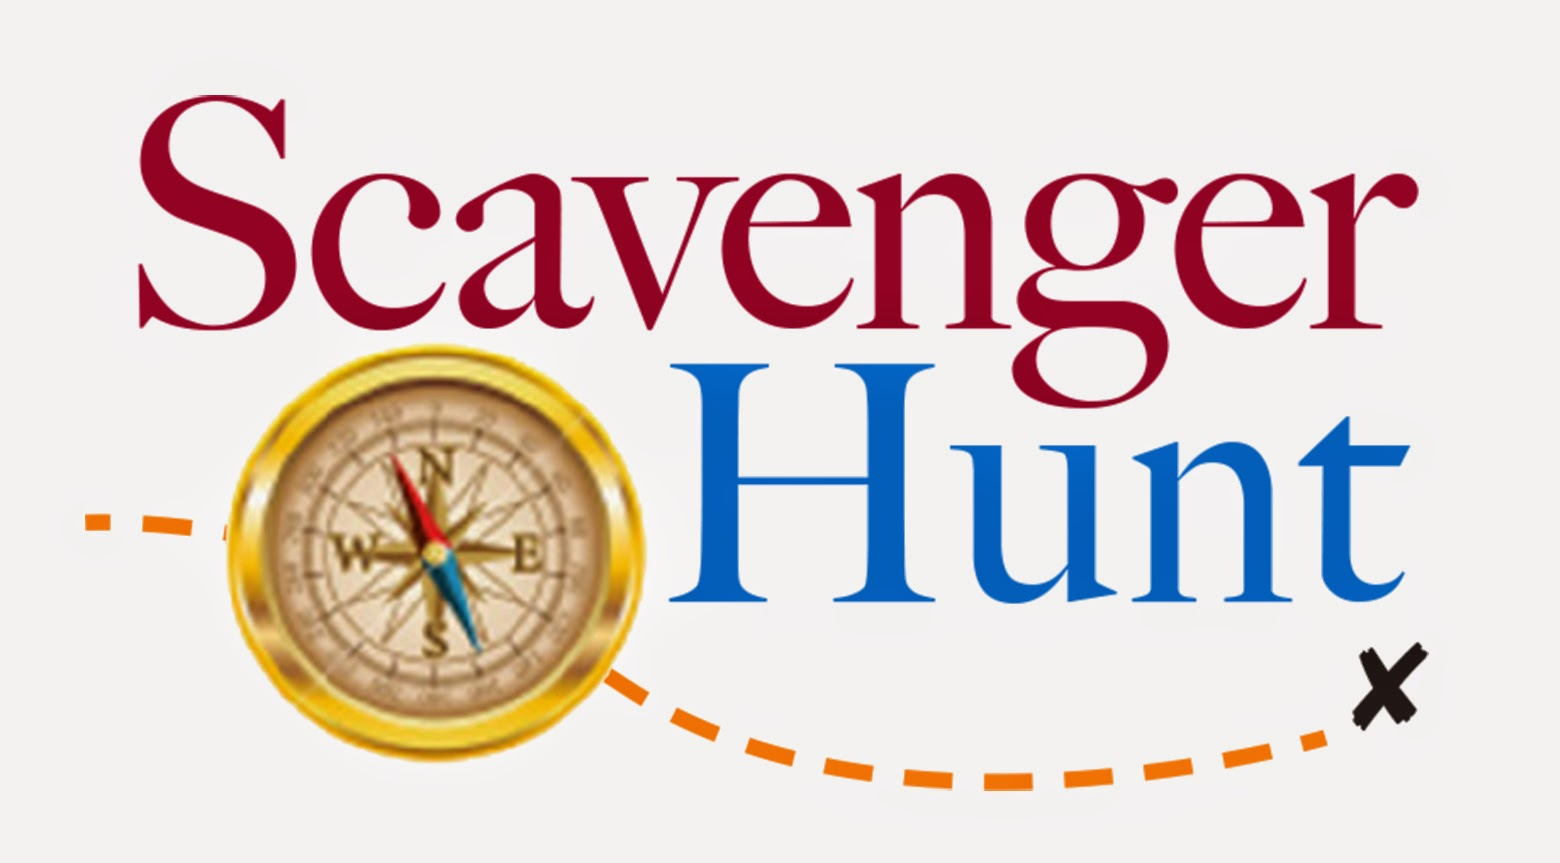 Turn A Scavenger Hunt Into A Fitness Opportunity